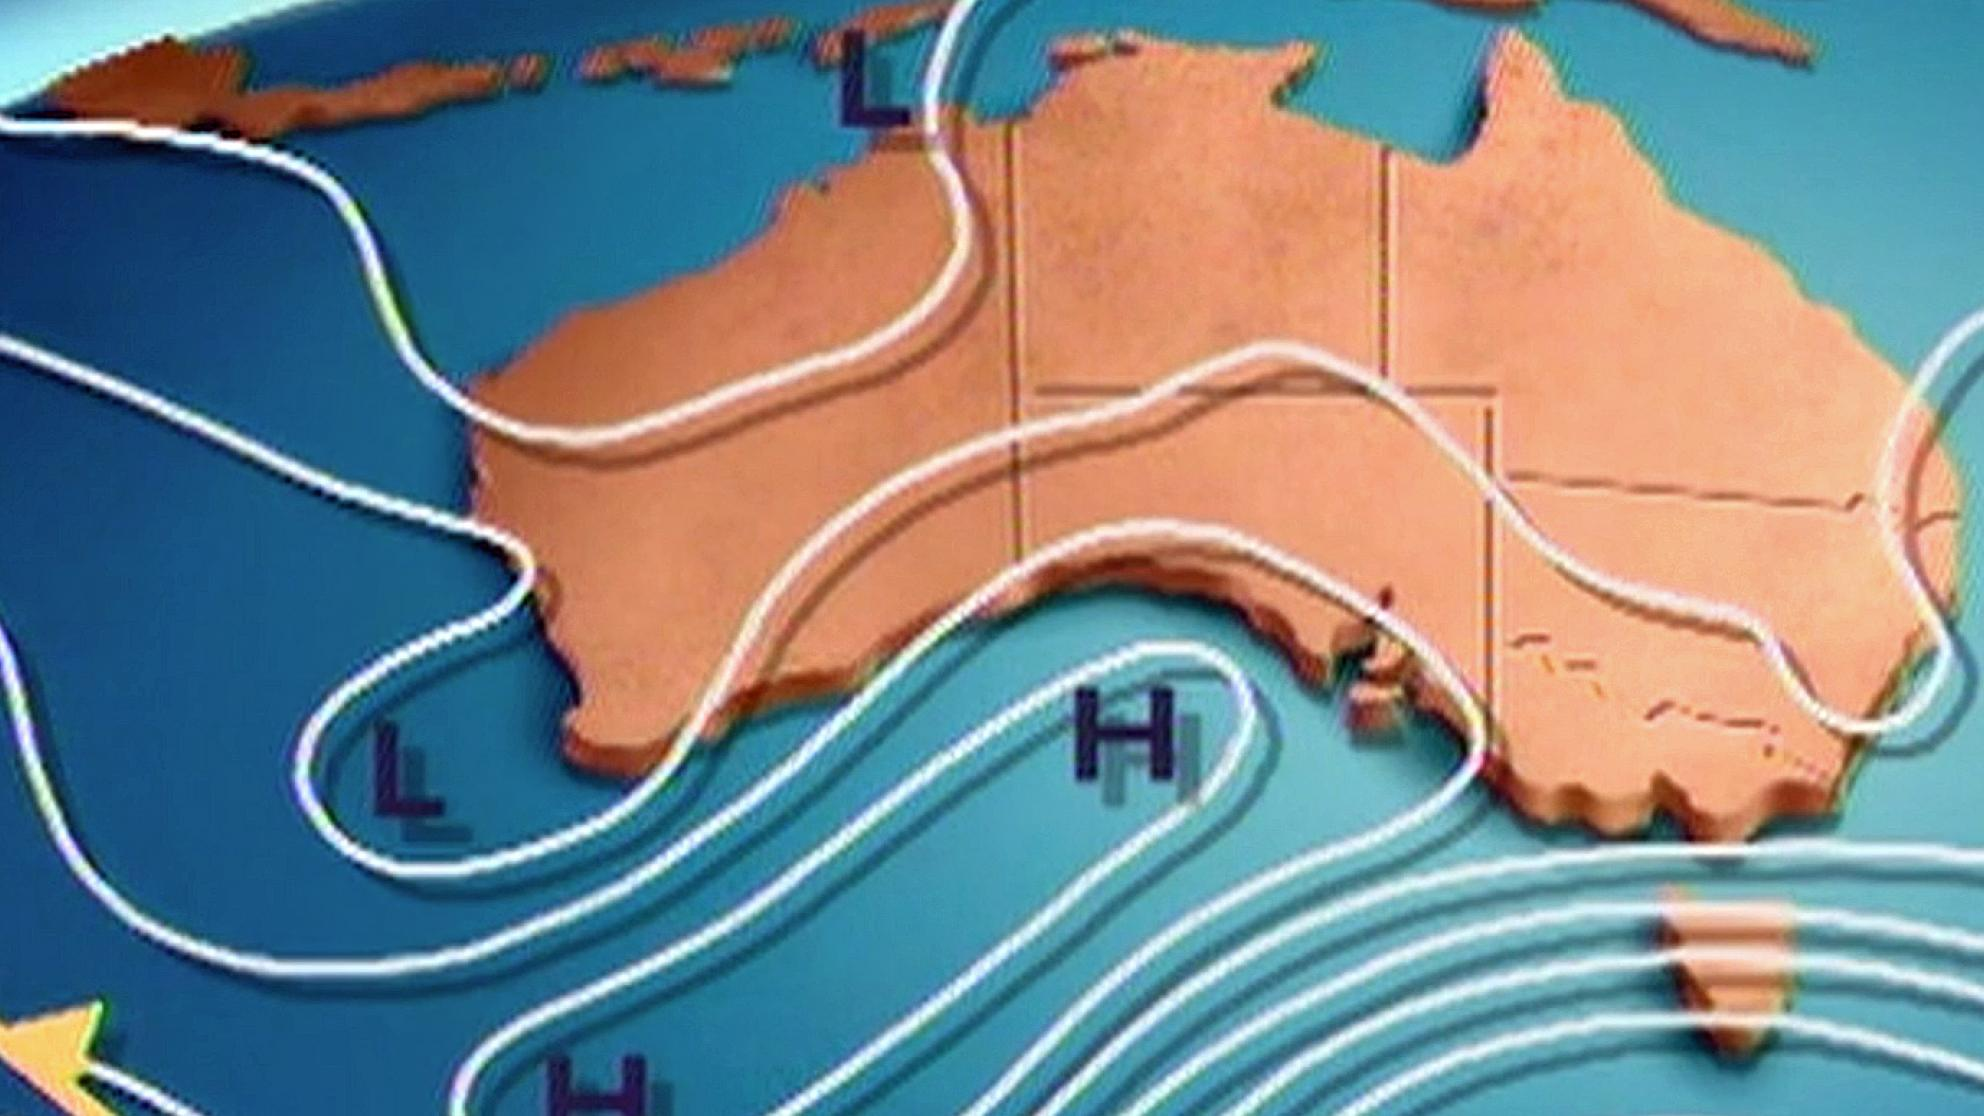 A weather map of Australia which has wavy lines and markers through it showing weather patterns.